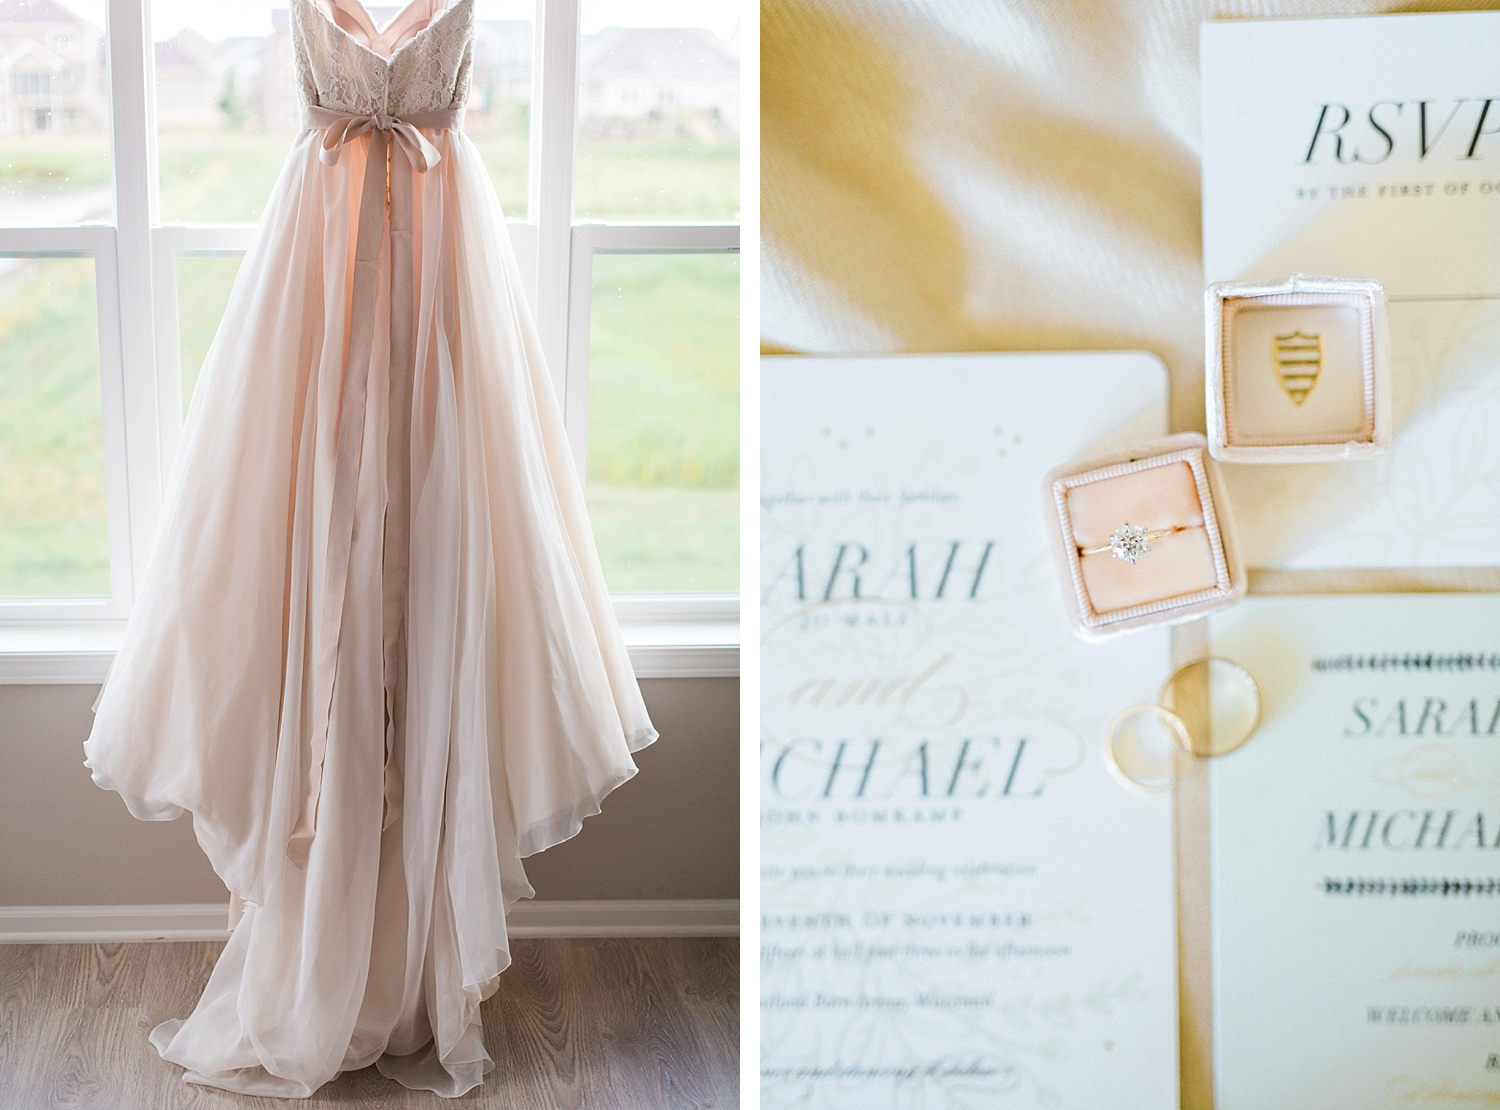 Blush Essence of Australia wedding gown and wedding ring in a blush The Mrs. Box for a rustic and elegant outdoor wedding